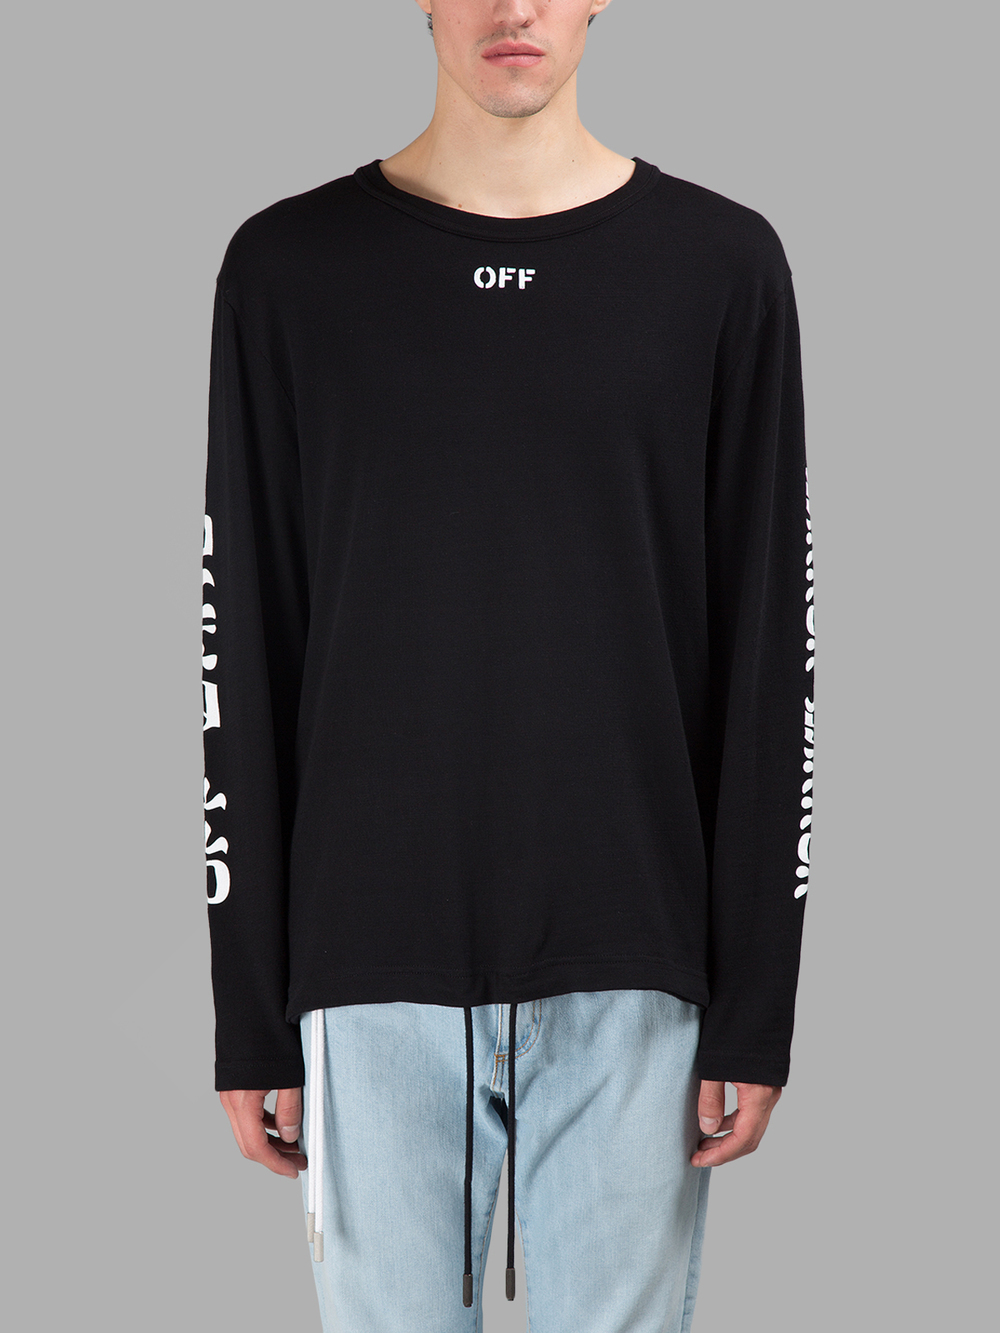 NEWSICALで小山慶一郎さん着用の私服TシャツOFF WHITE LONG SLEEVES QUOTES T-SHIRT